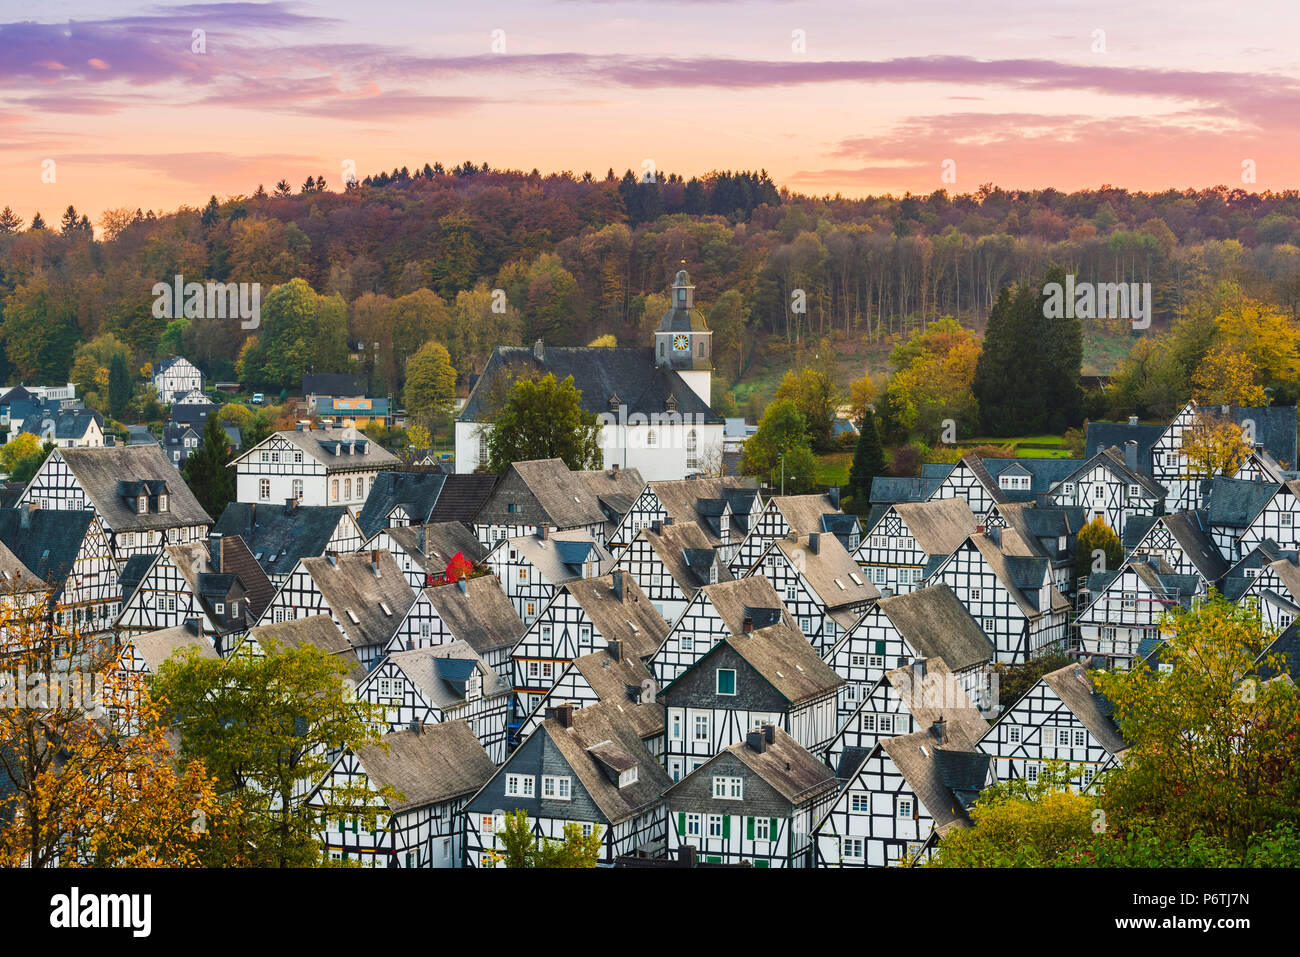 Freudenberg, Siegen-Wittgenstein, North Rhine-Westphalia, Germany. Typical timber-framed houses in the historical 'Alter Flecken' old town. - Stock Image